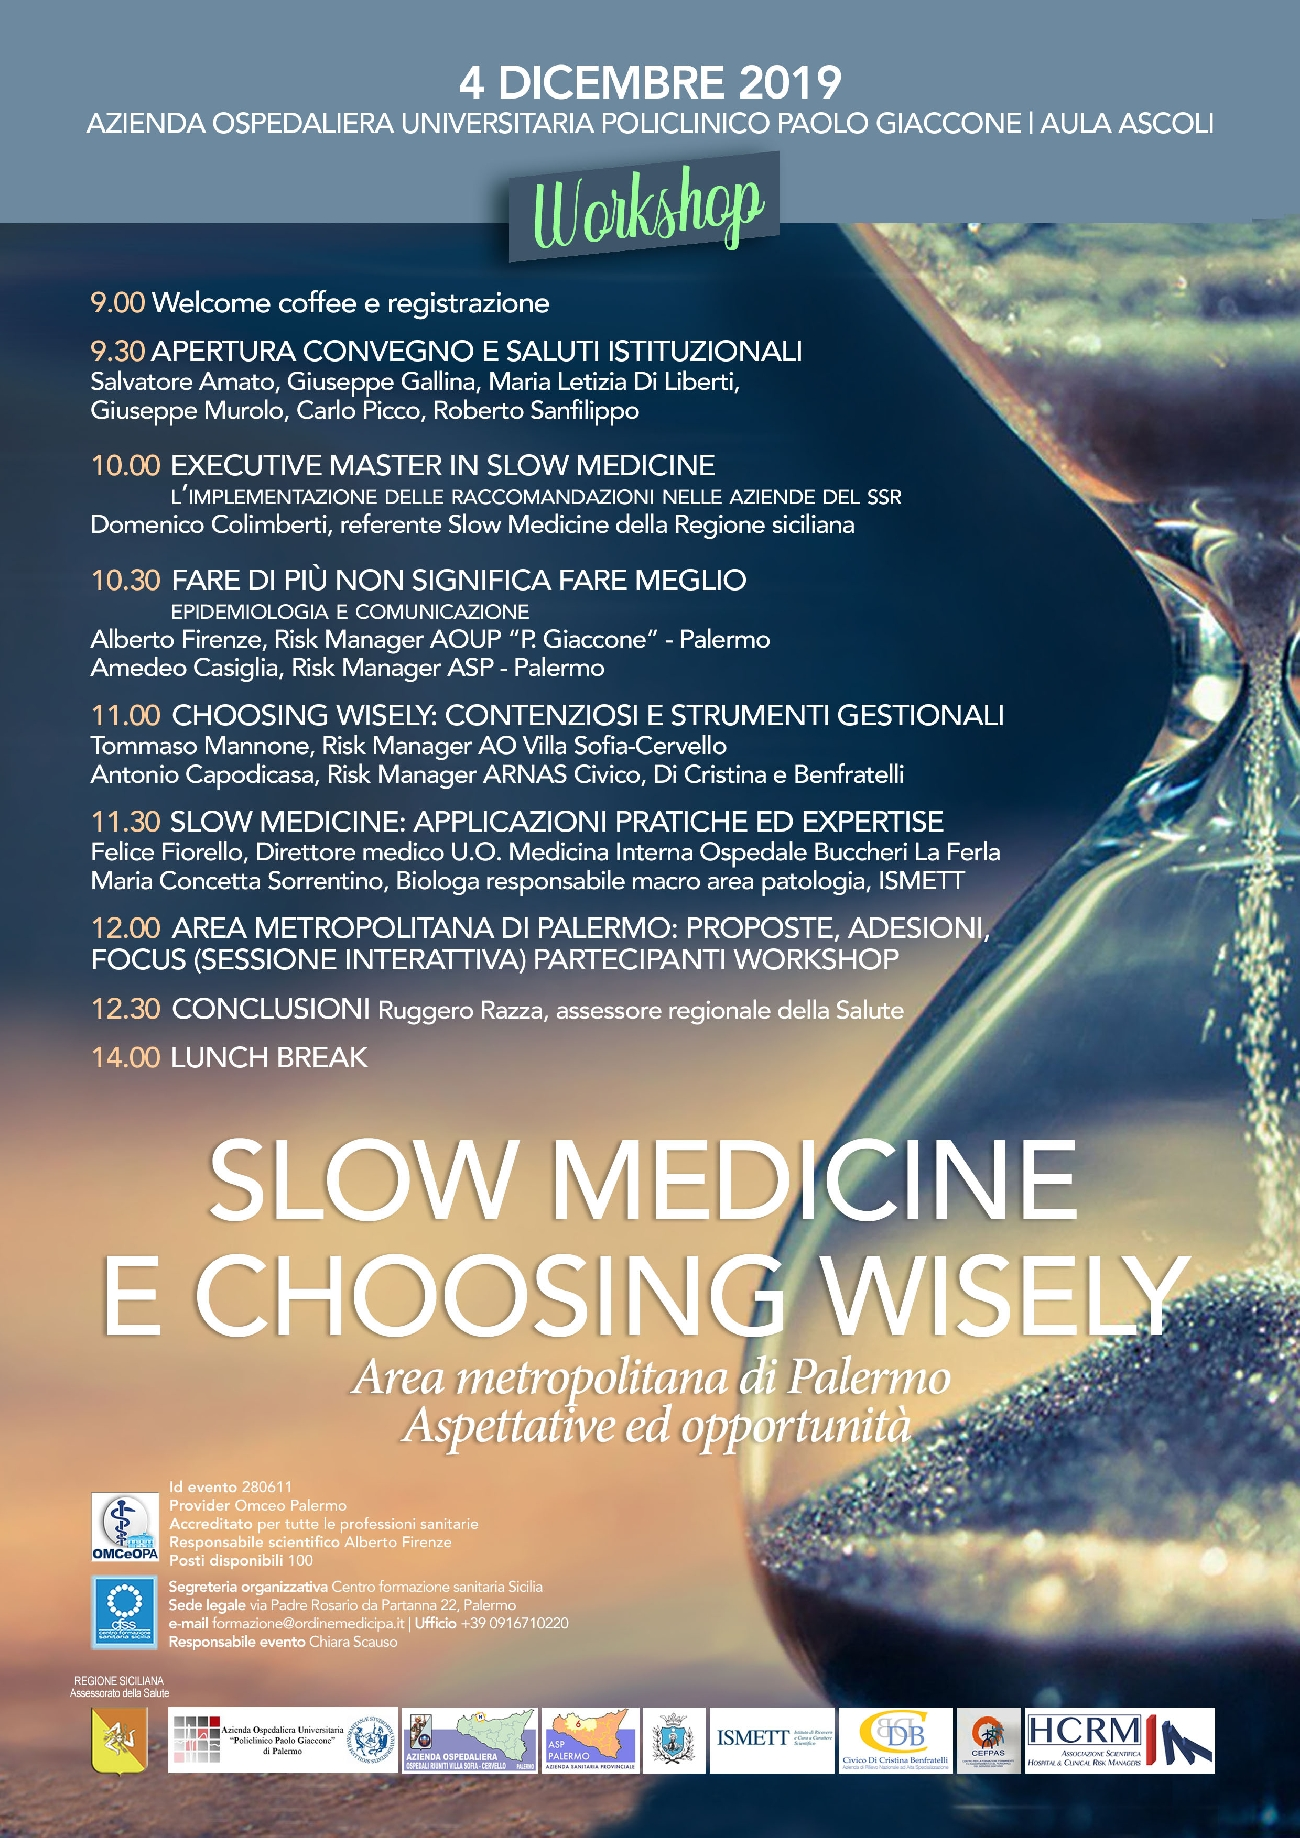 Workshop SLOW MEDICINE E CHOOSING WISELY AREA METROPOLITANA DI PALERMO. Aspettative ed Opportunità